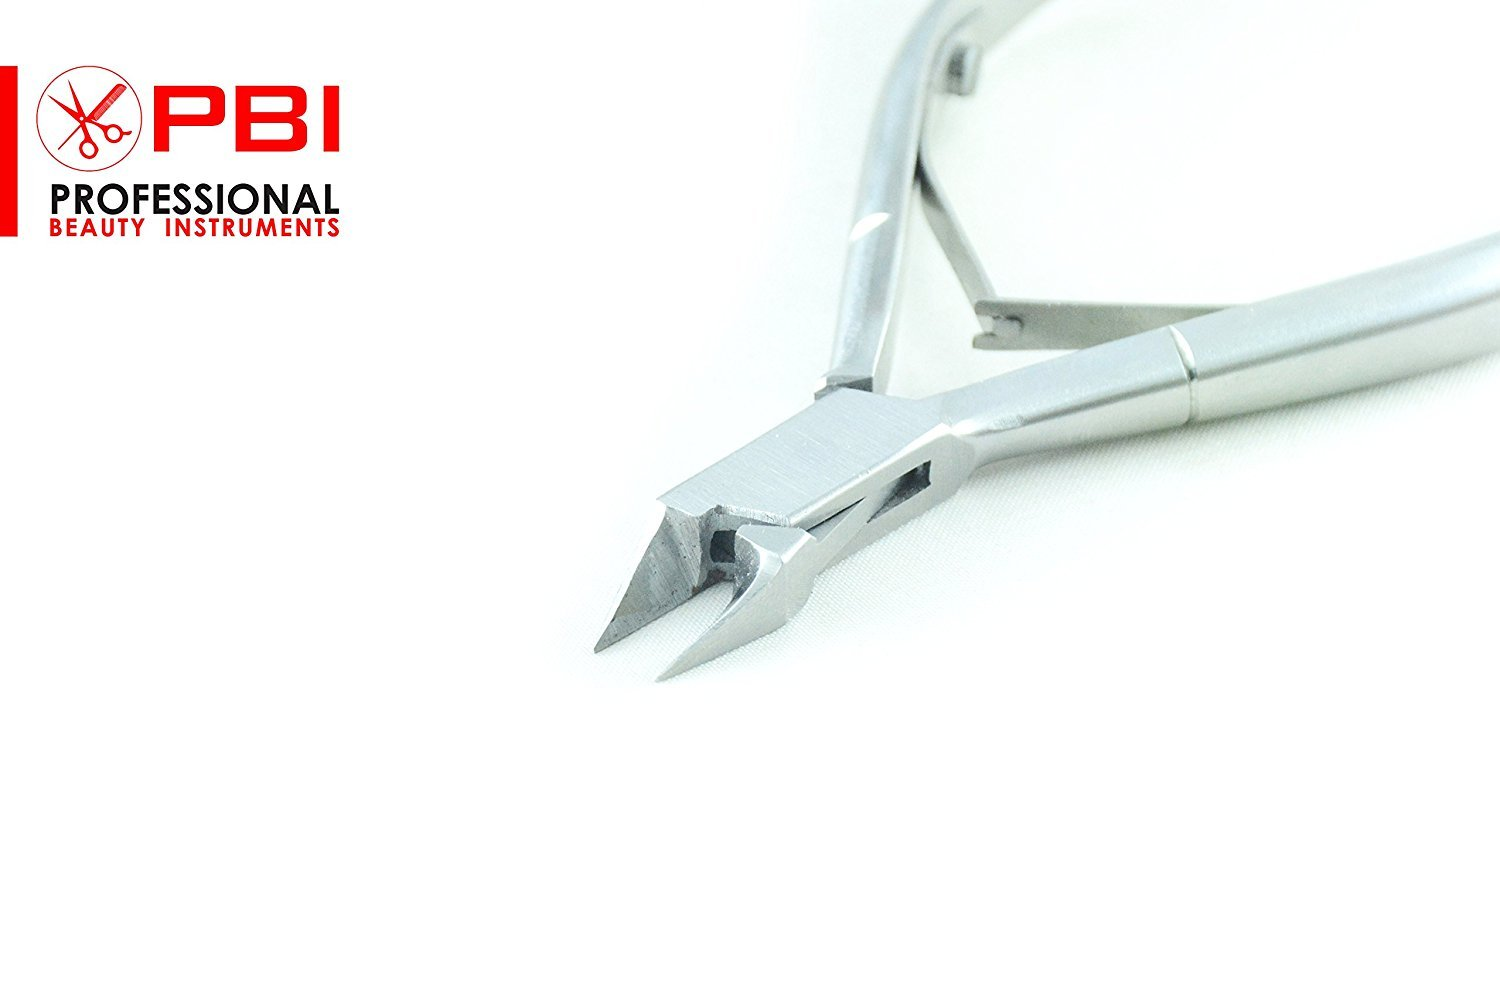 PBI - Precision Nail Nippers for ingrown nails manicure pedicure Nail Clippers Premium Quality, double spring pliers - 4 inch Stainless steel with pouch 50 pieces set